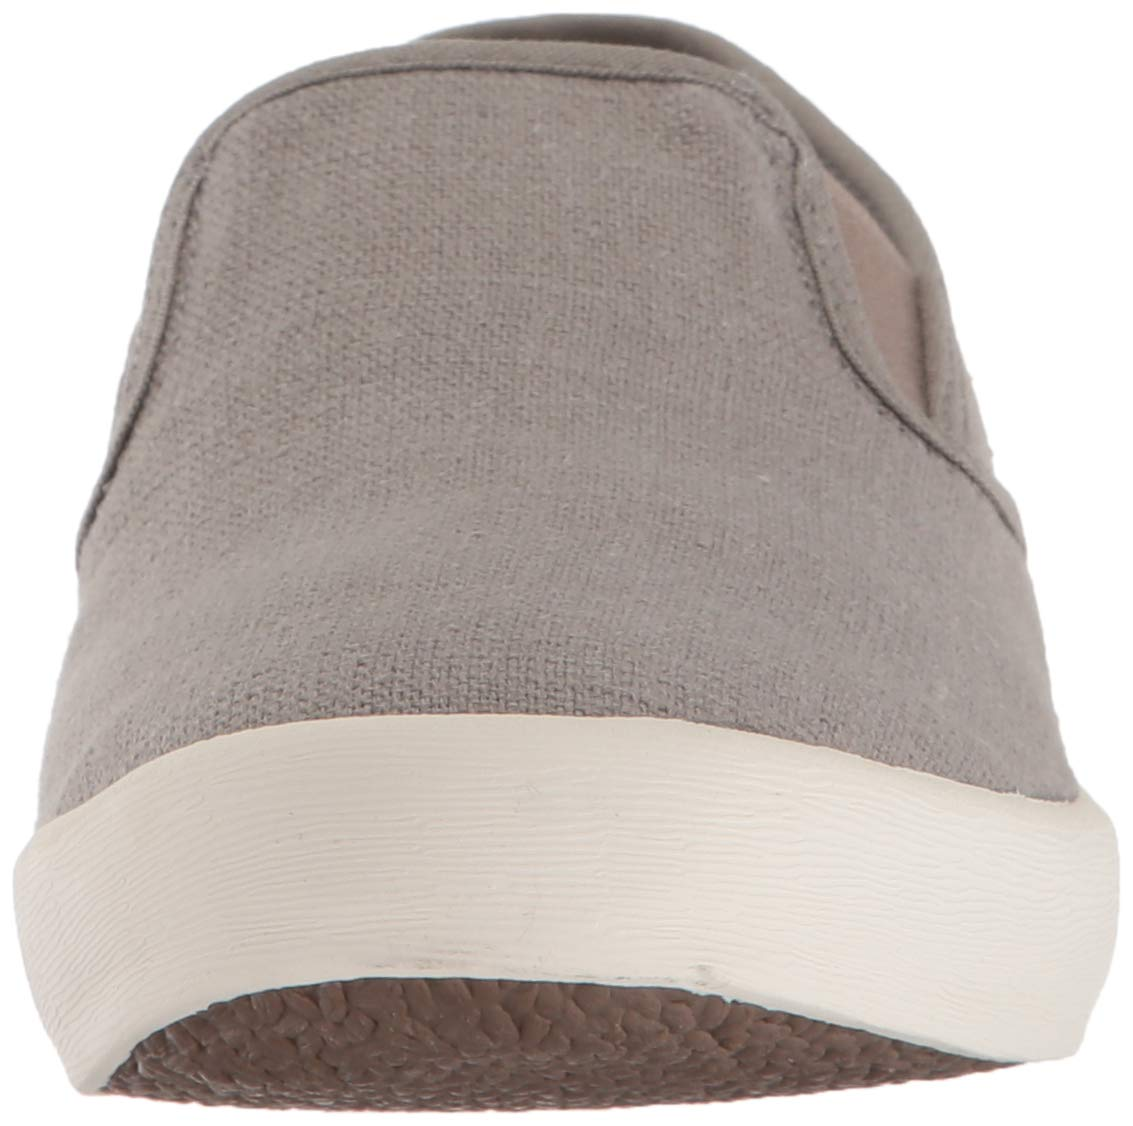 SeaVees Men's Baja Slip On Standard Casual Sneaker,Tin Grey, 12 by SeaVees (Image #4)